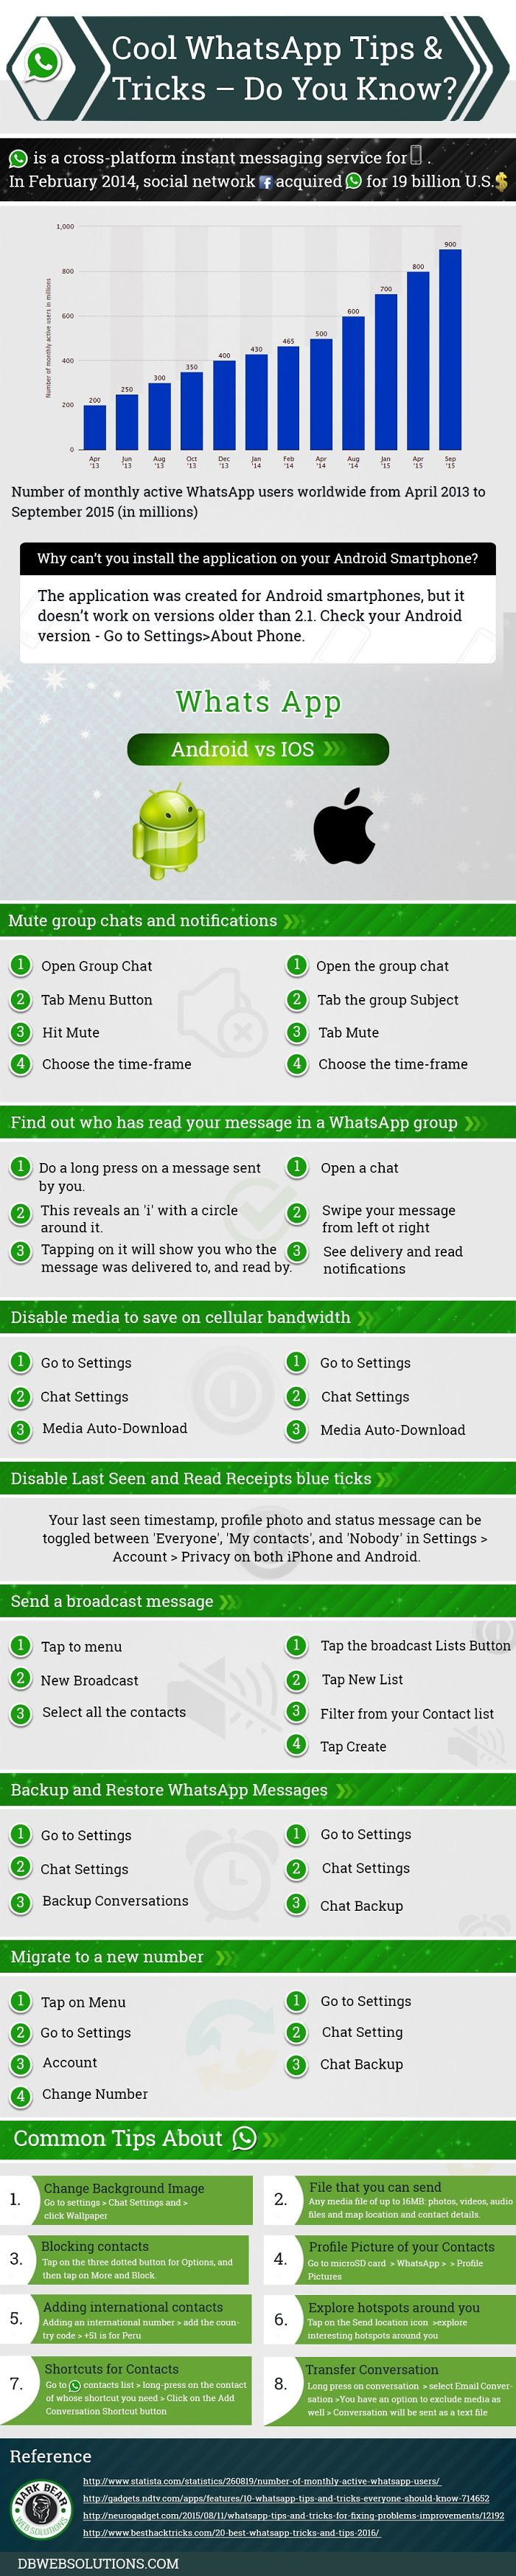 Cool Whats App Tips And Tricks – Do You Know? (infographic)